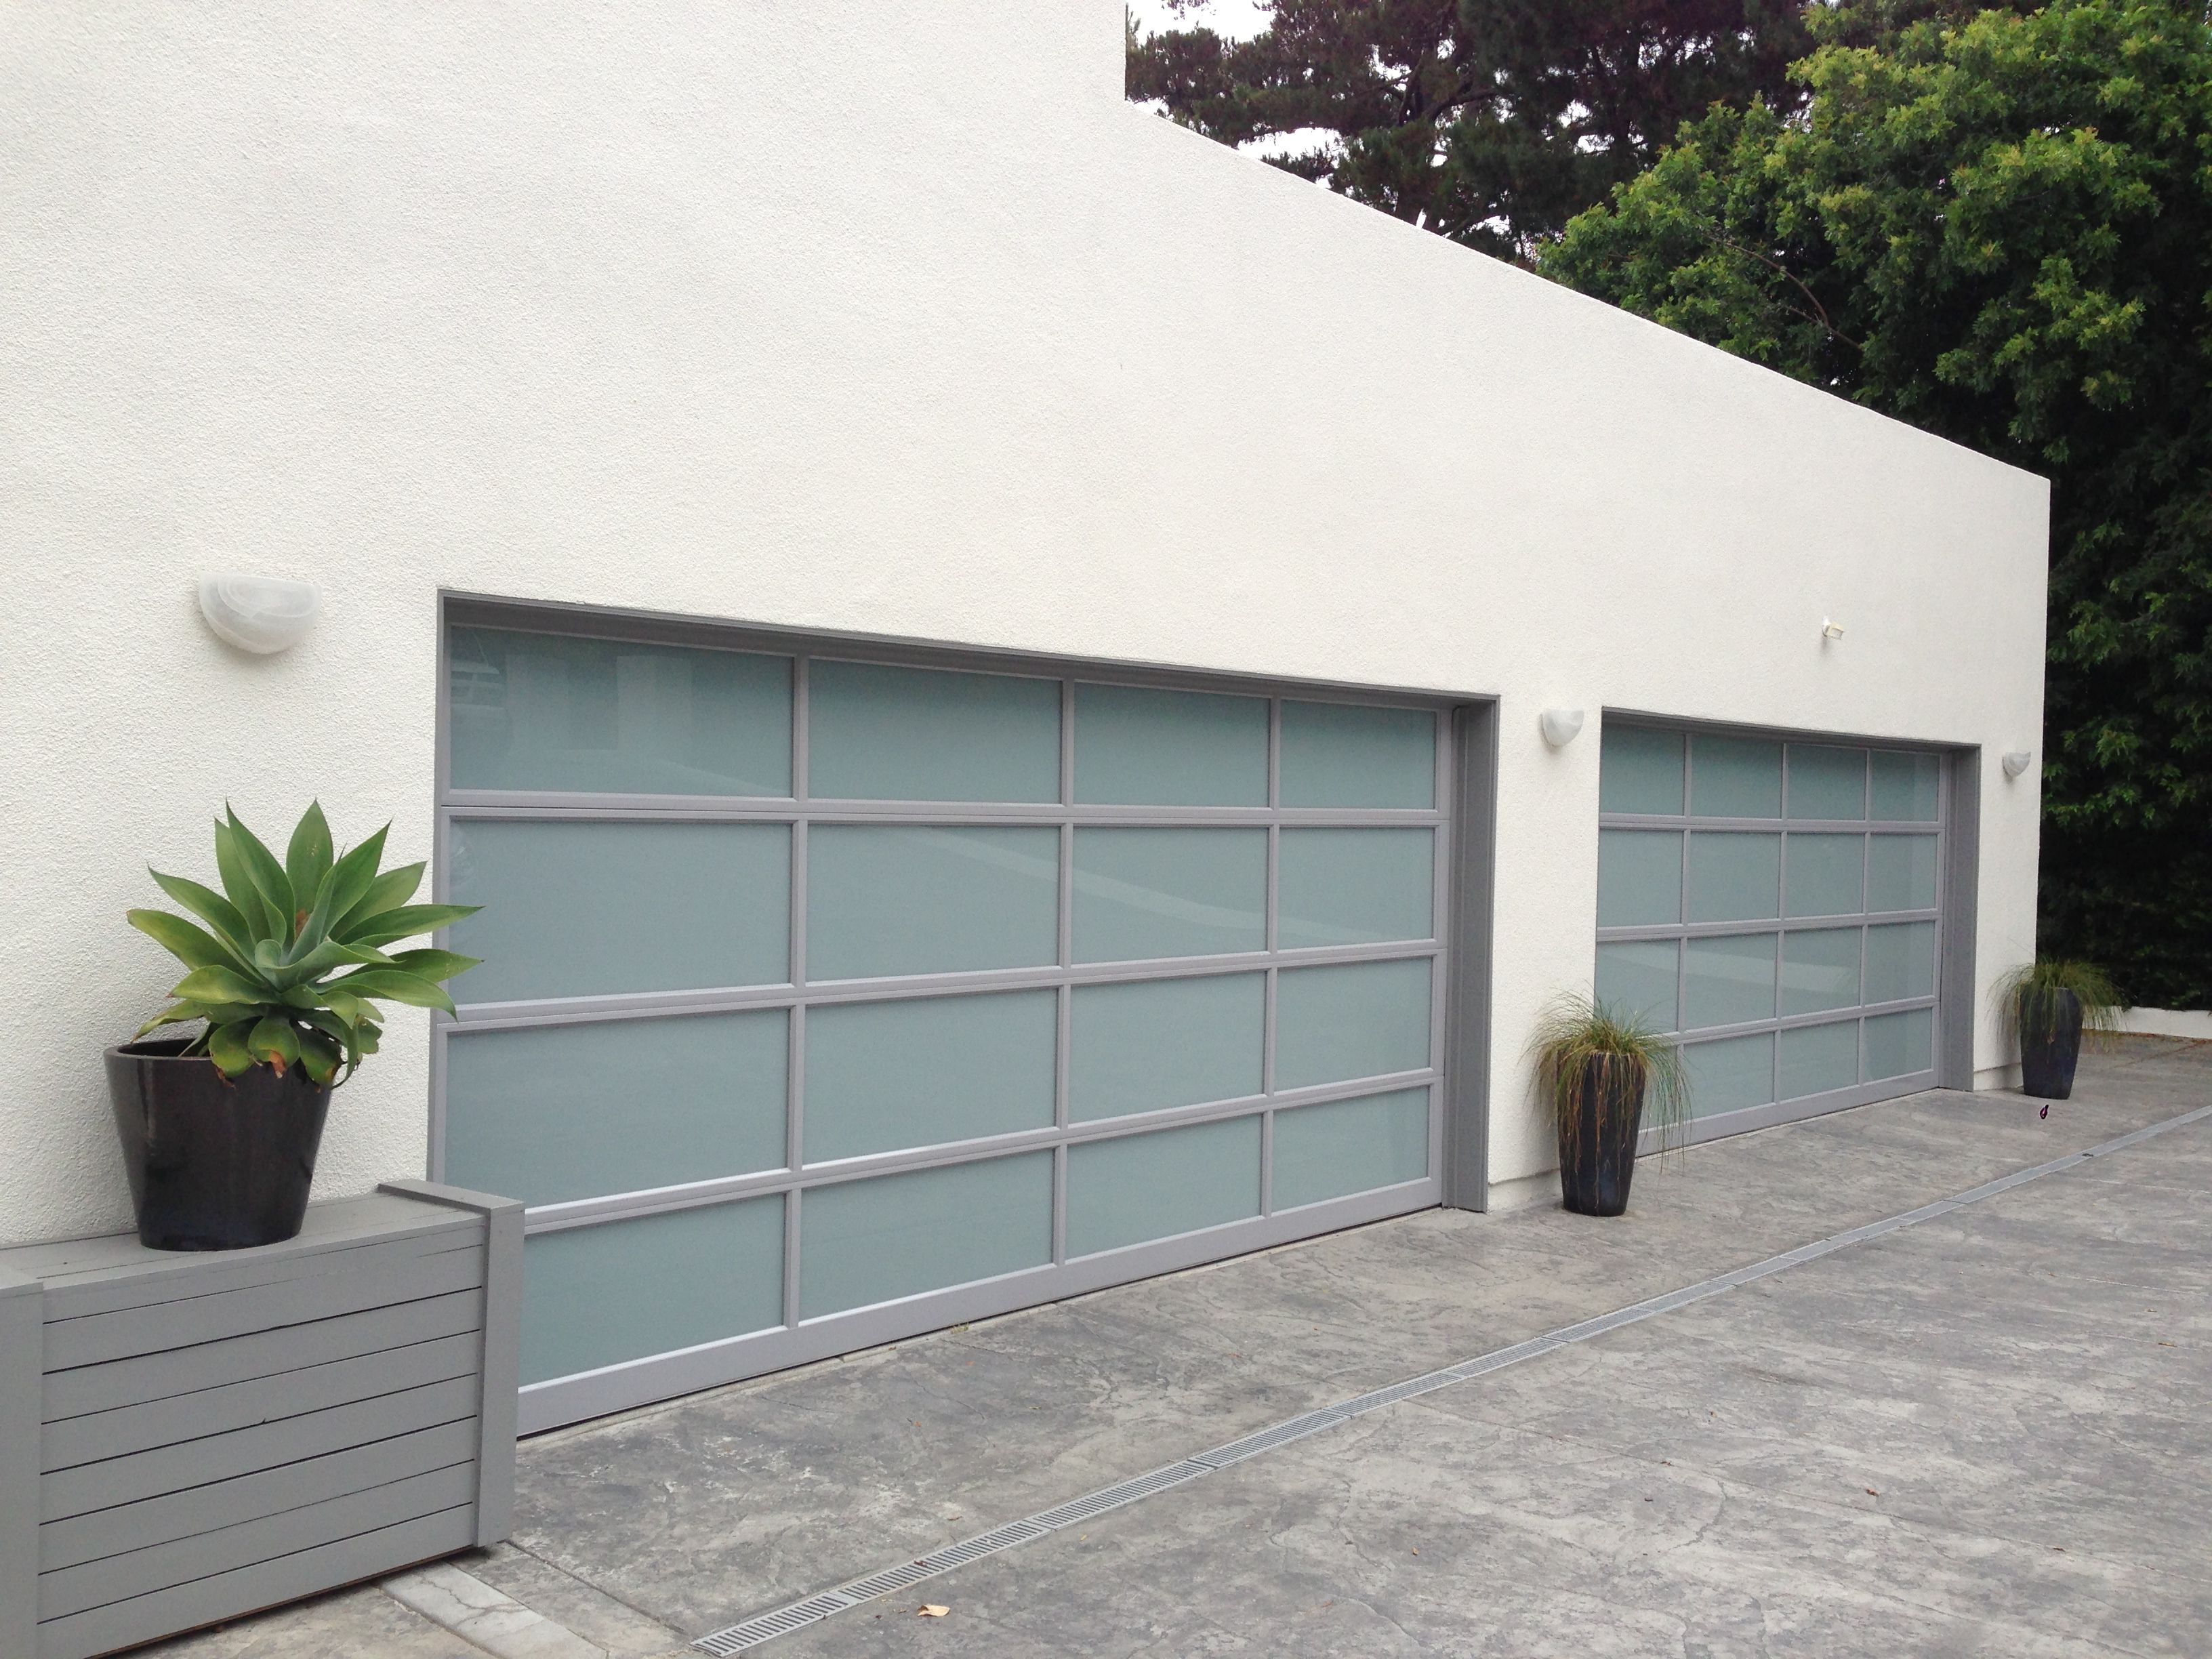 Clopay Avante Collection Glass Garage Doors With Clear